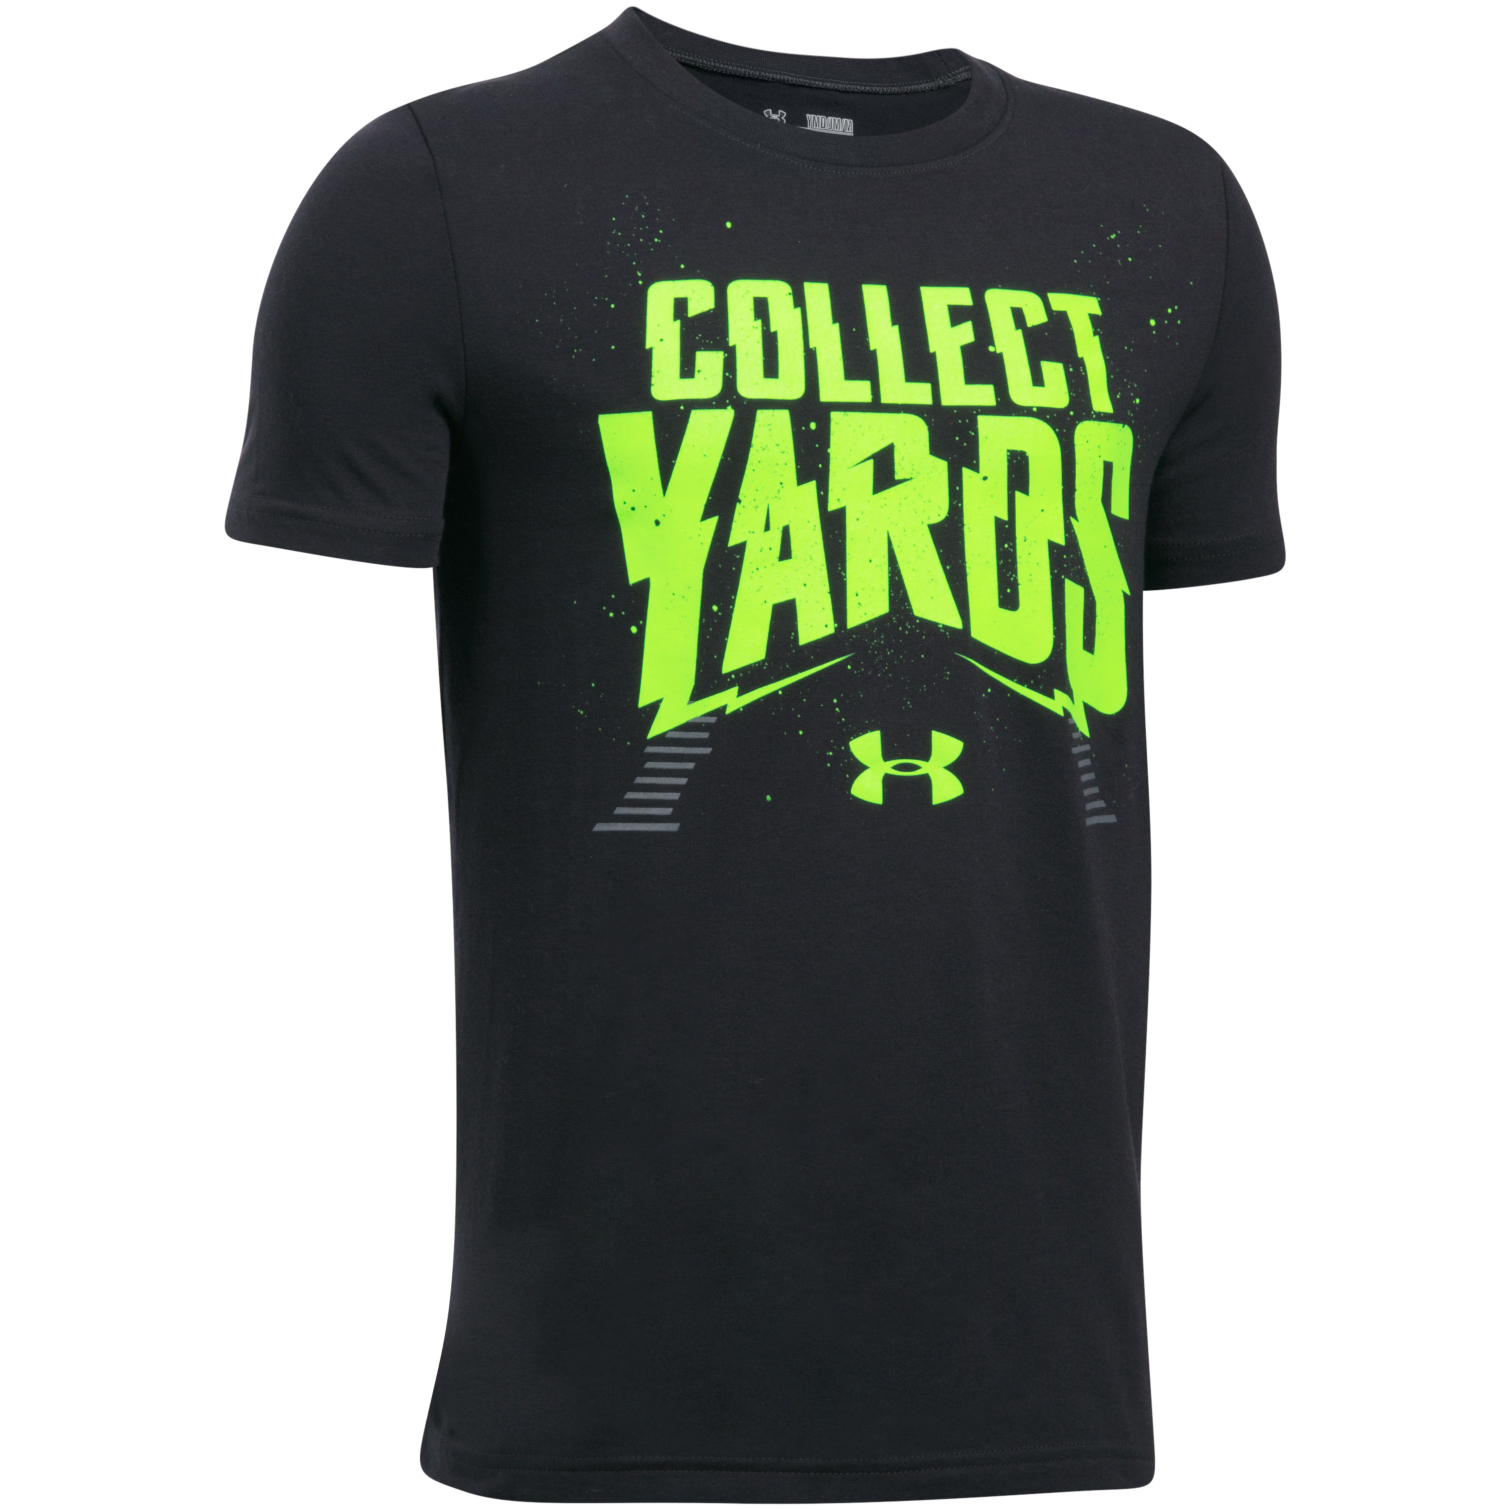 Under Armour Boys' Collect Yards Football Short Sleeve T-shirt